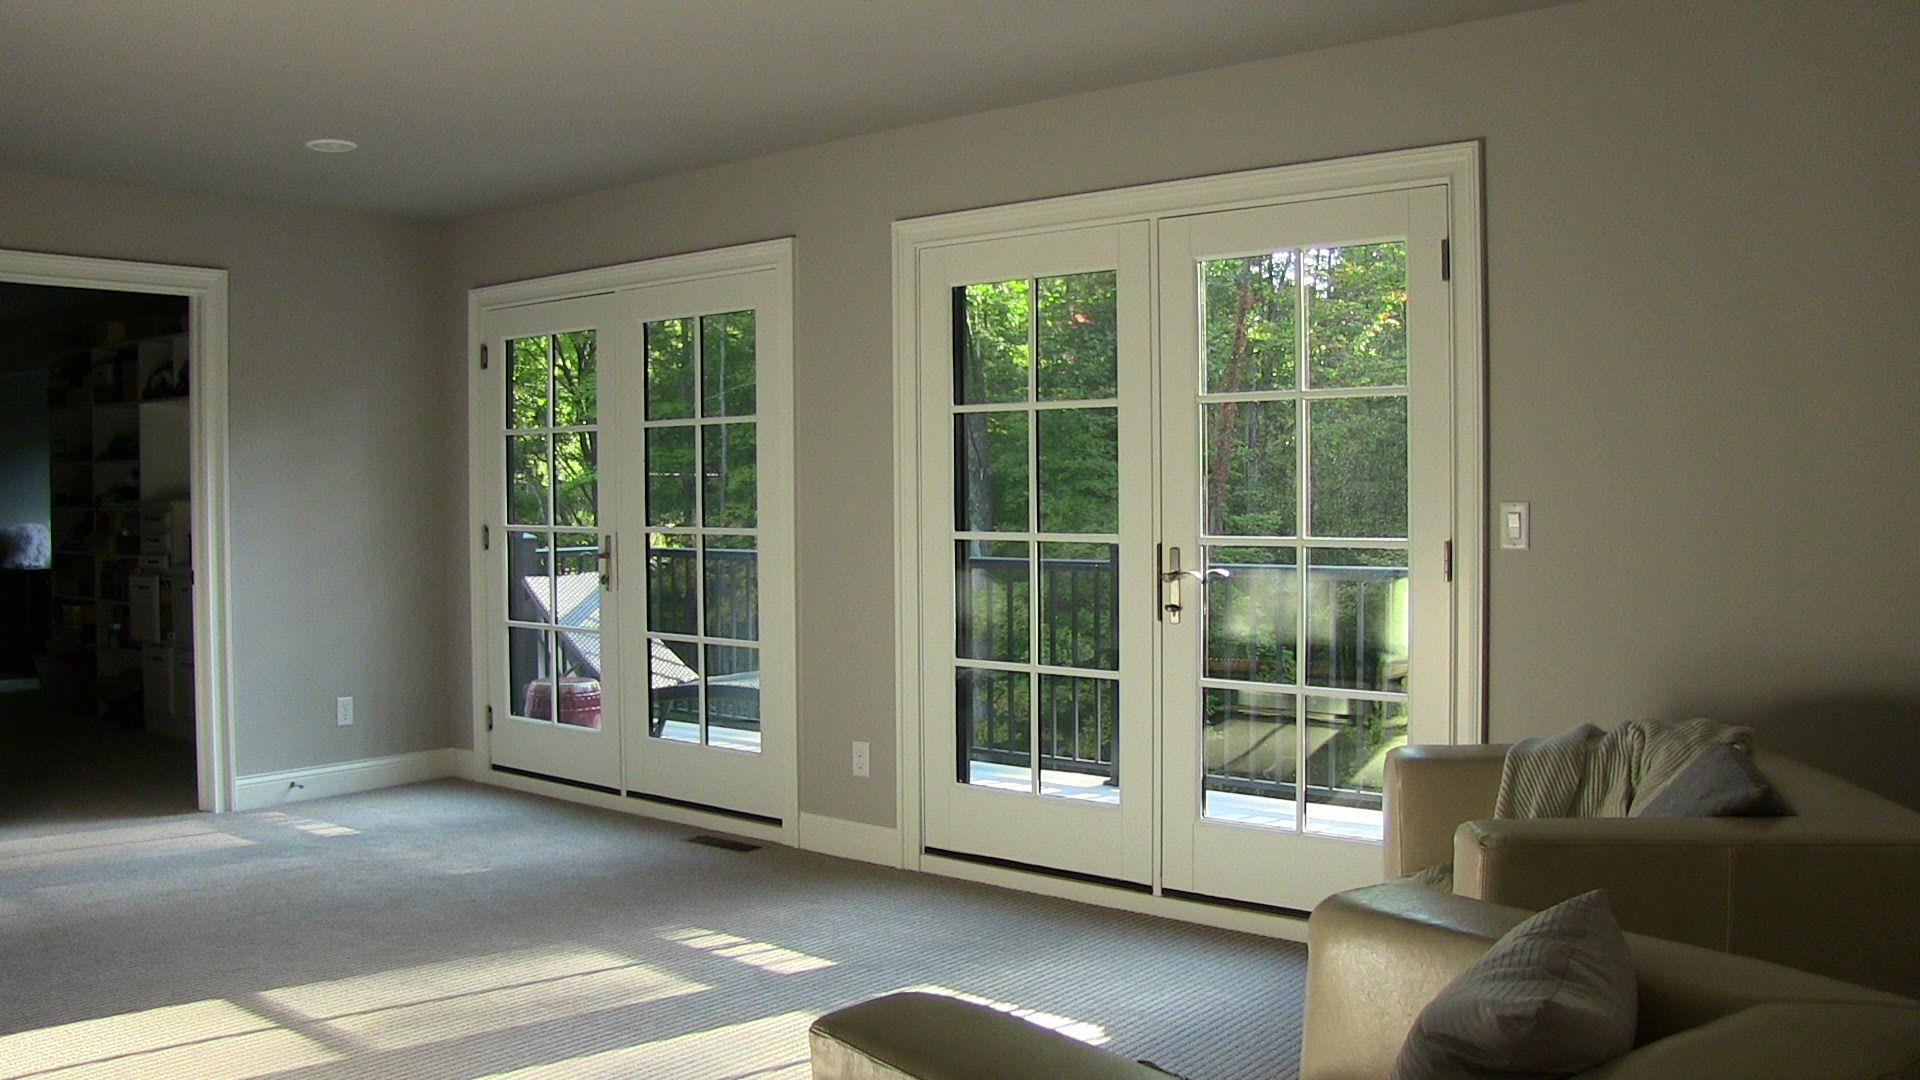 A Testimonial From Homeowners Who Put Quaker Windows And Doors In Their New Home They Have No Complaints Or Any Negative R Wood Clad Windows Windows New Homes